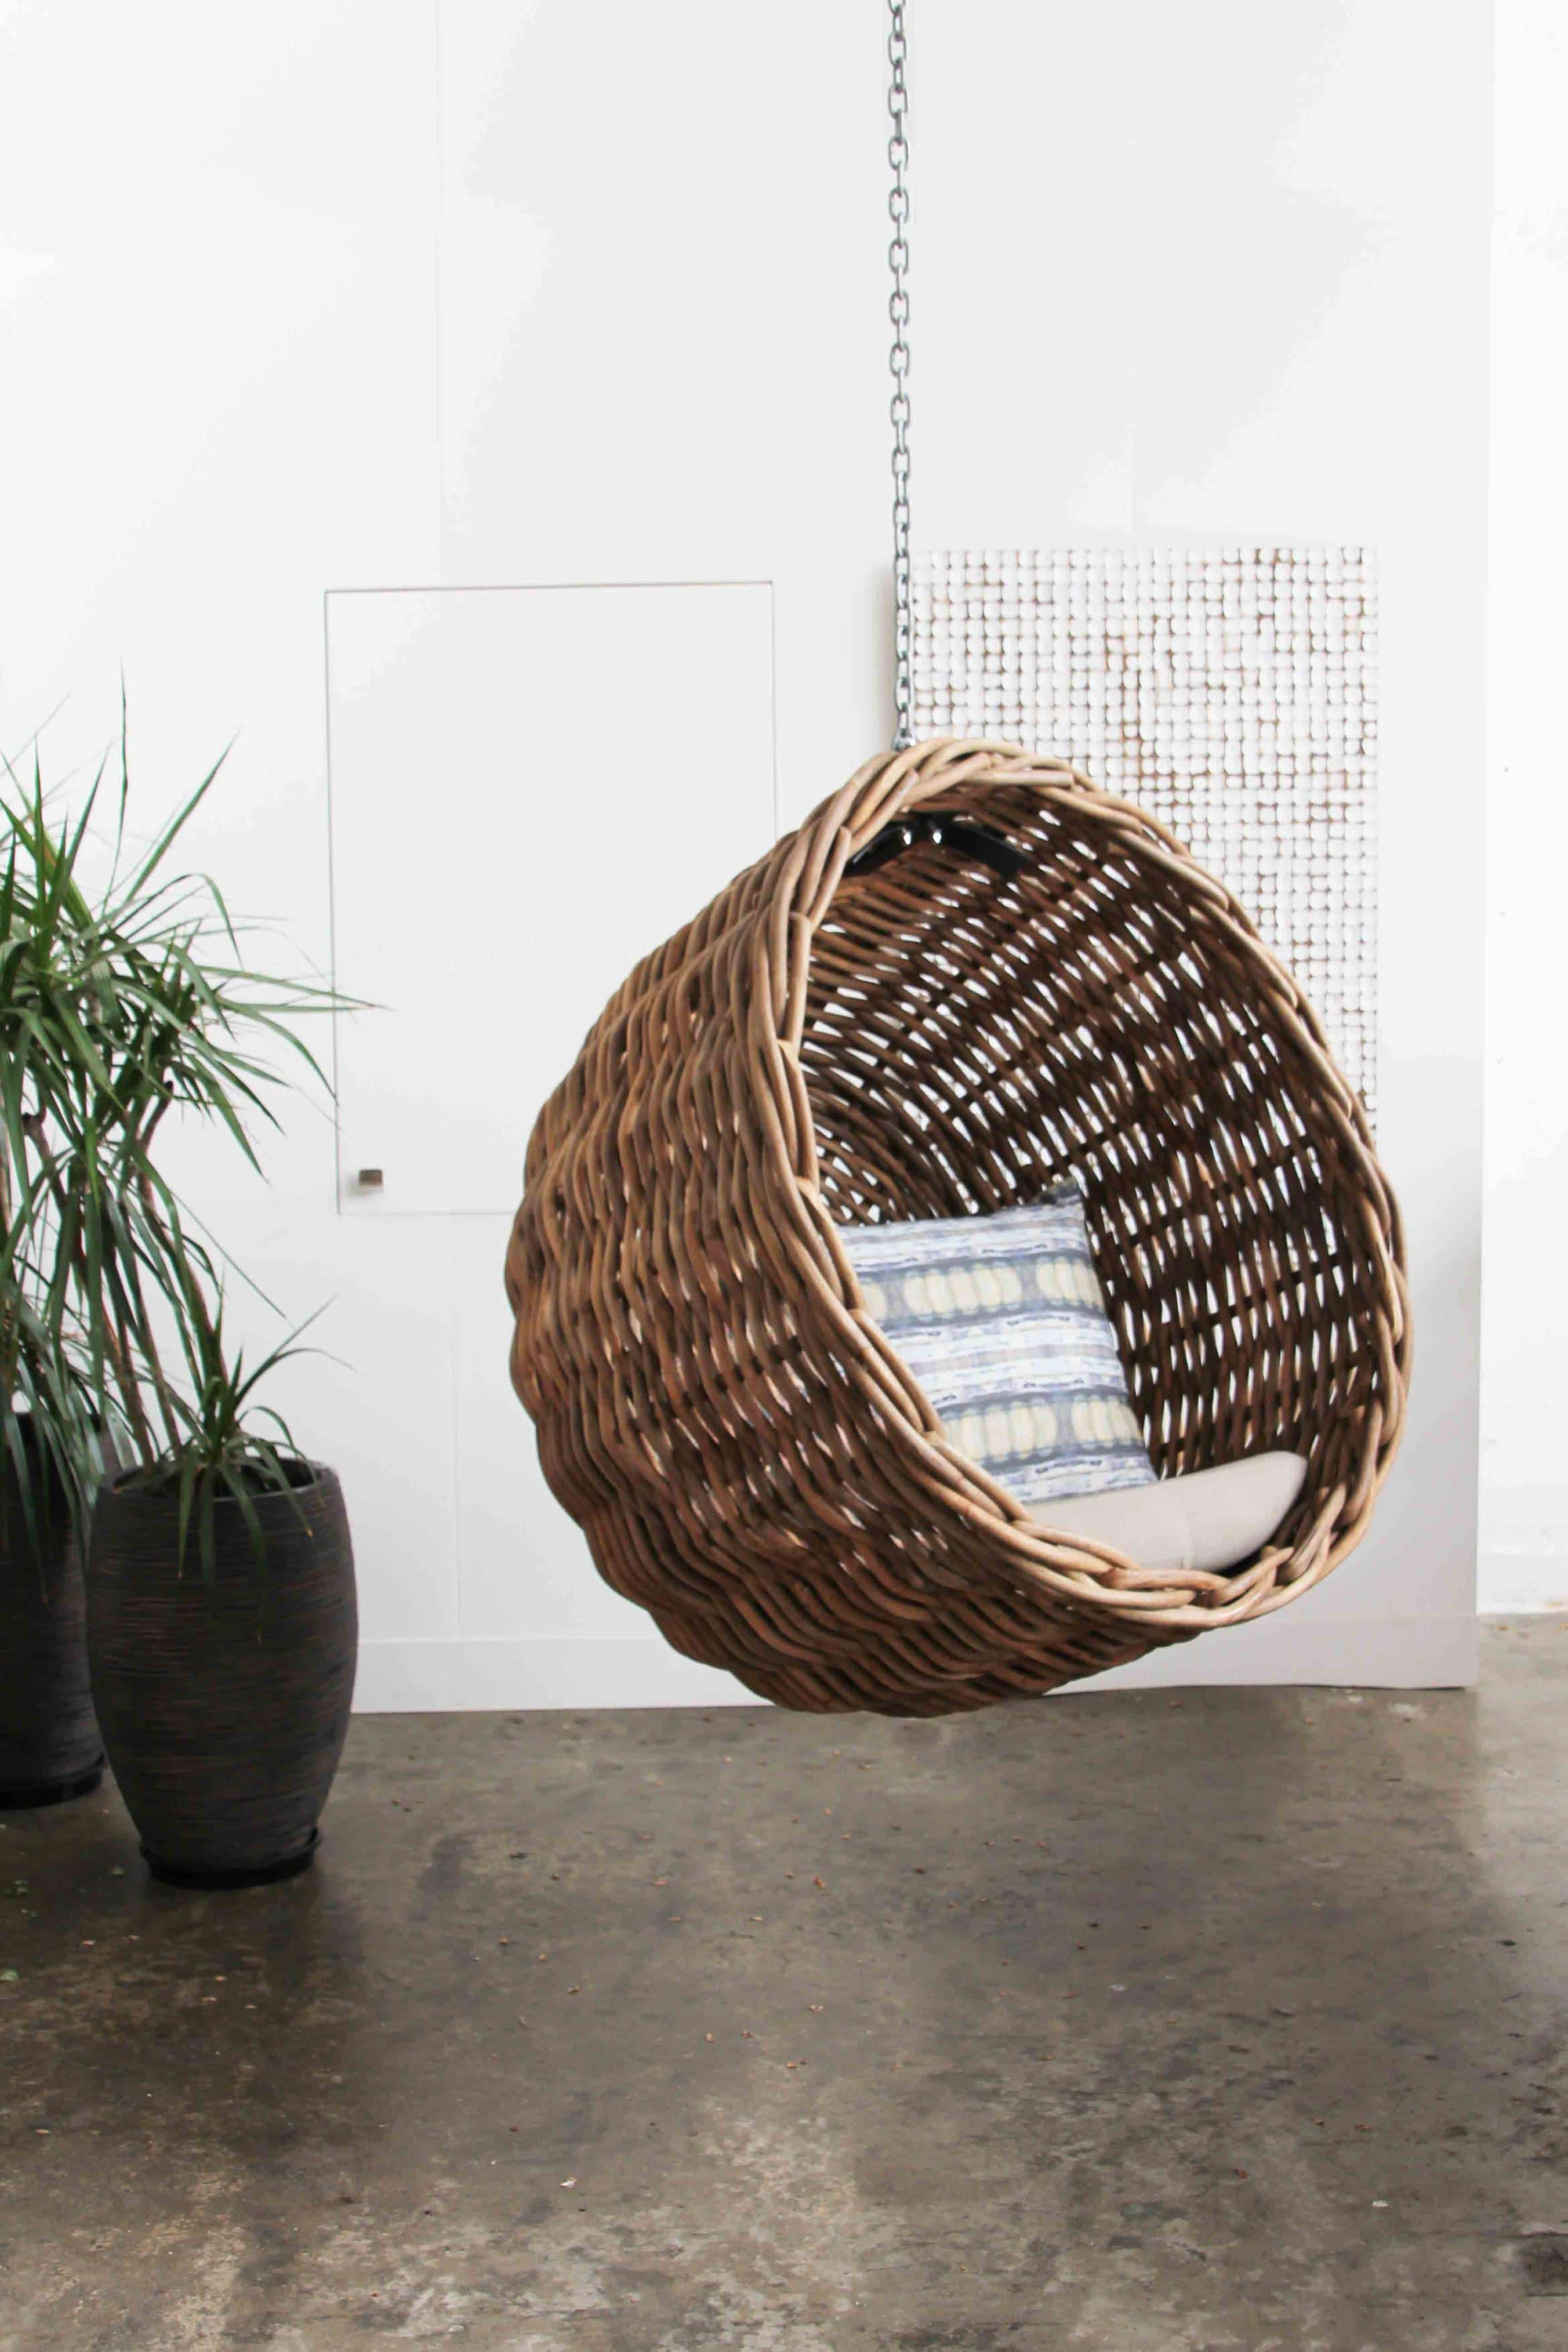 Zulu Hanging Chair Recycled Timber Furniture Melbourne Yard